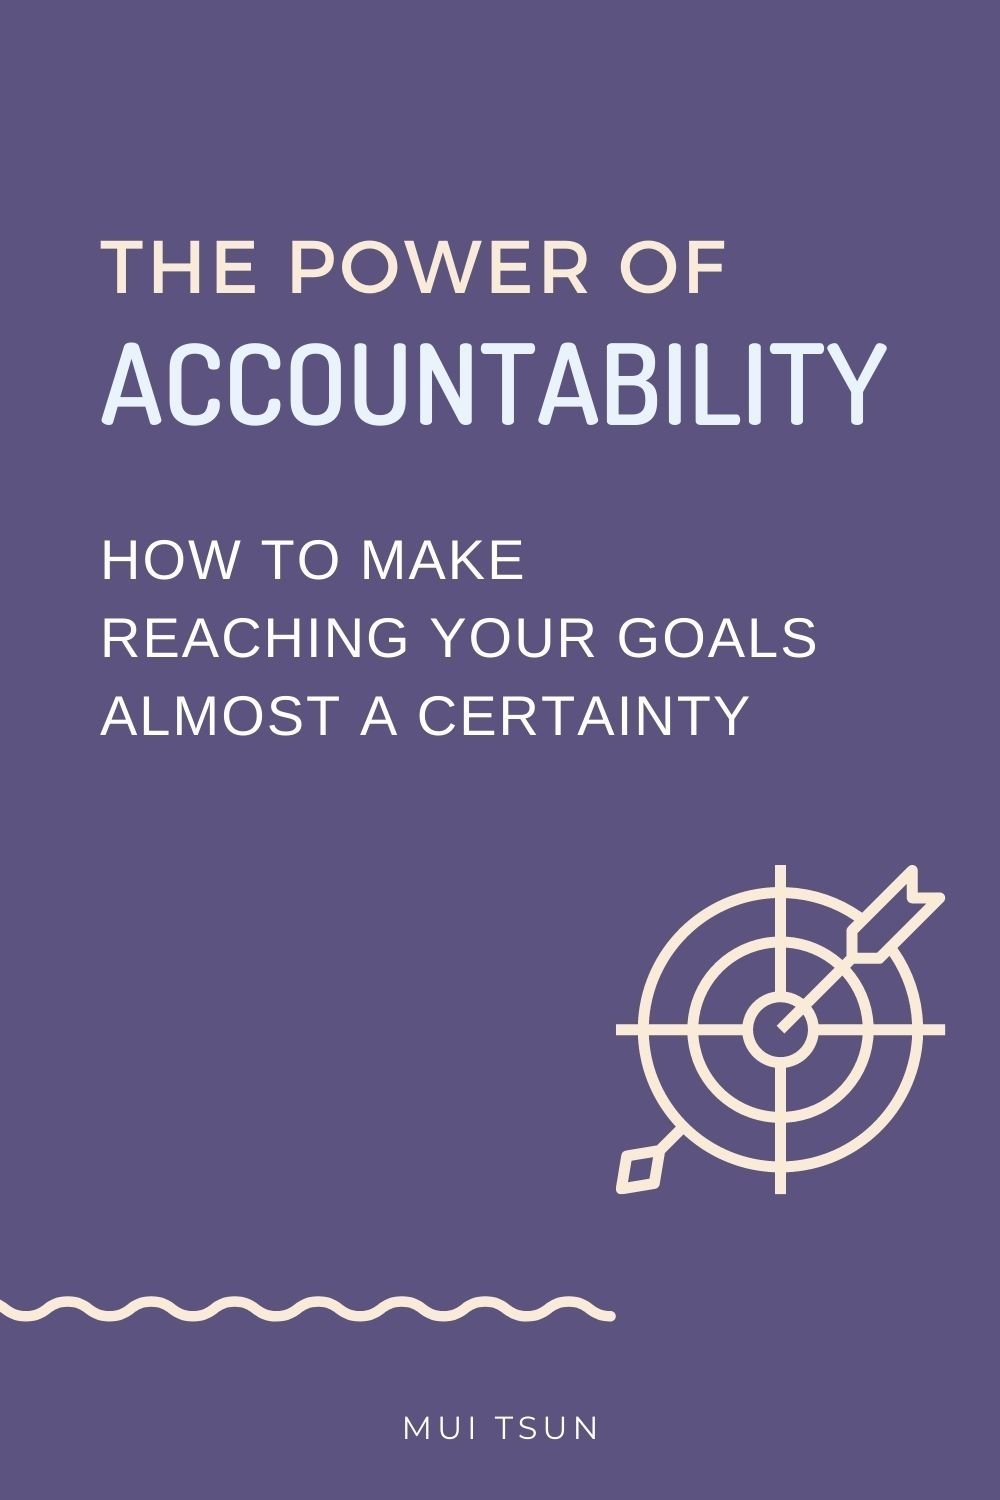 The Power of Accountability: How to Make Reaching Your Goals Almost a Certainty